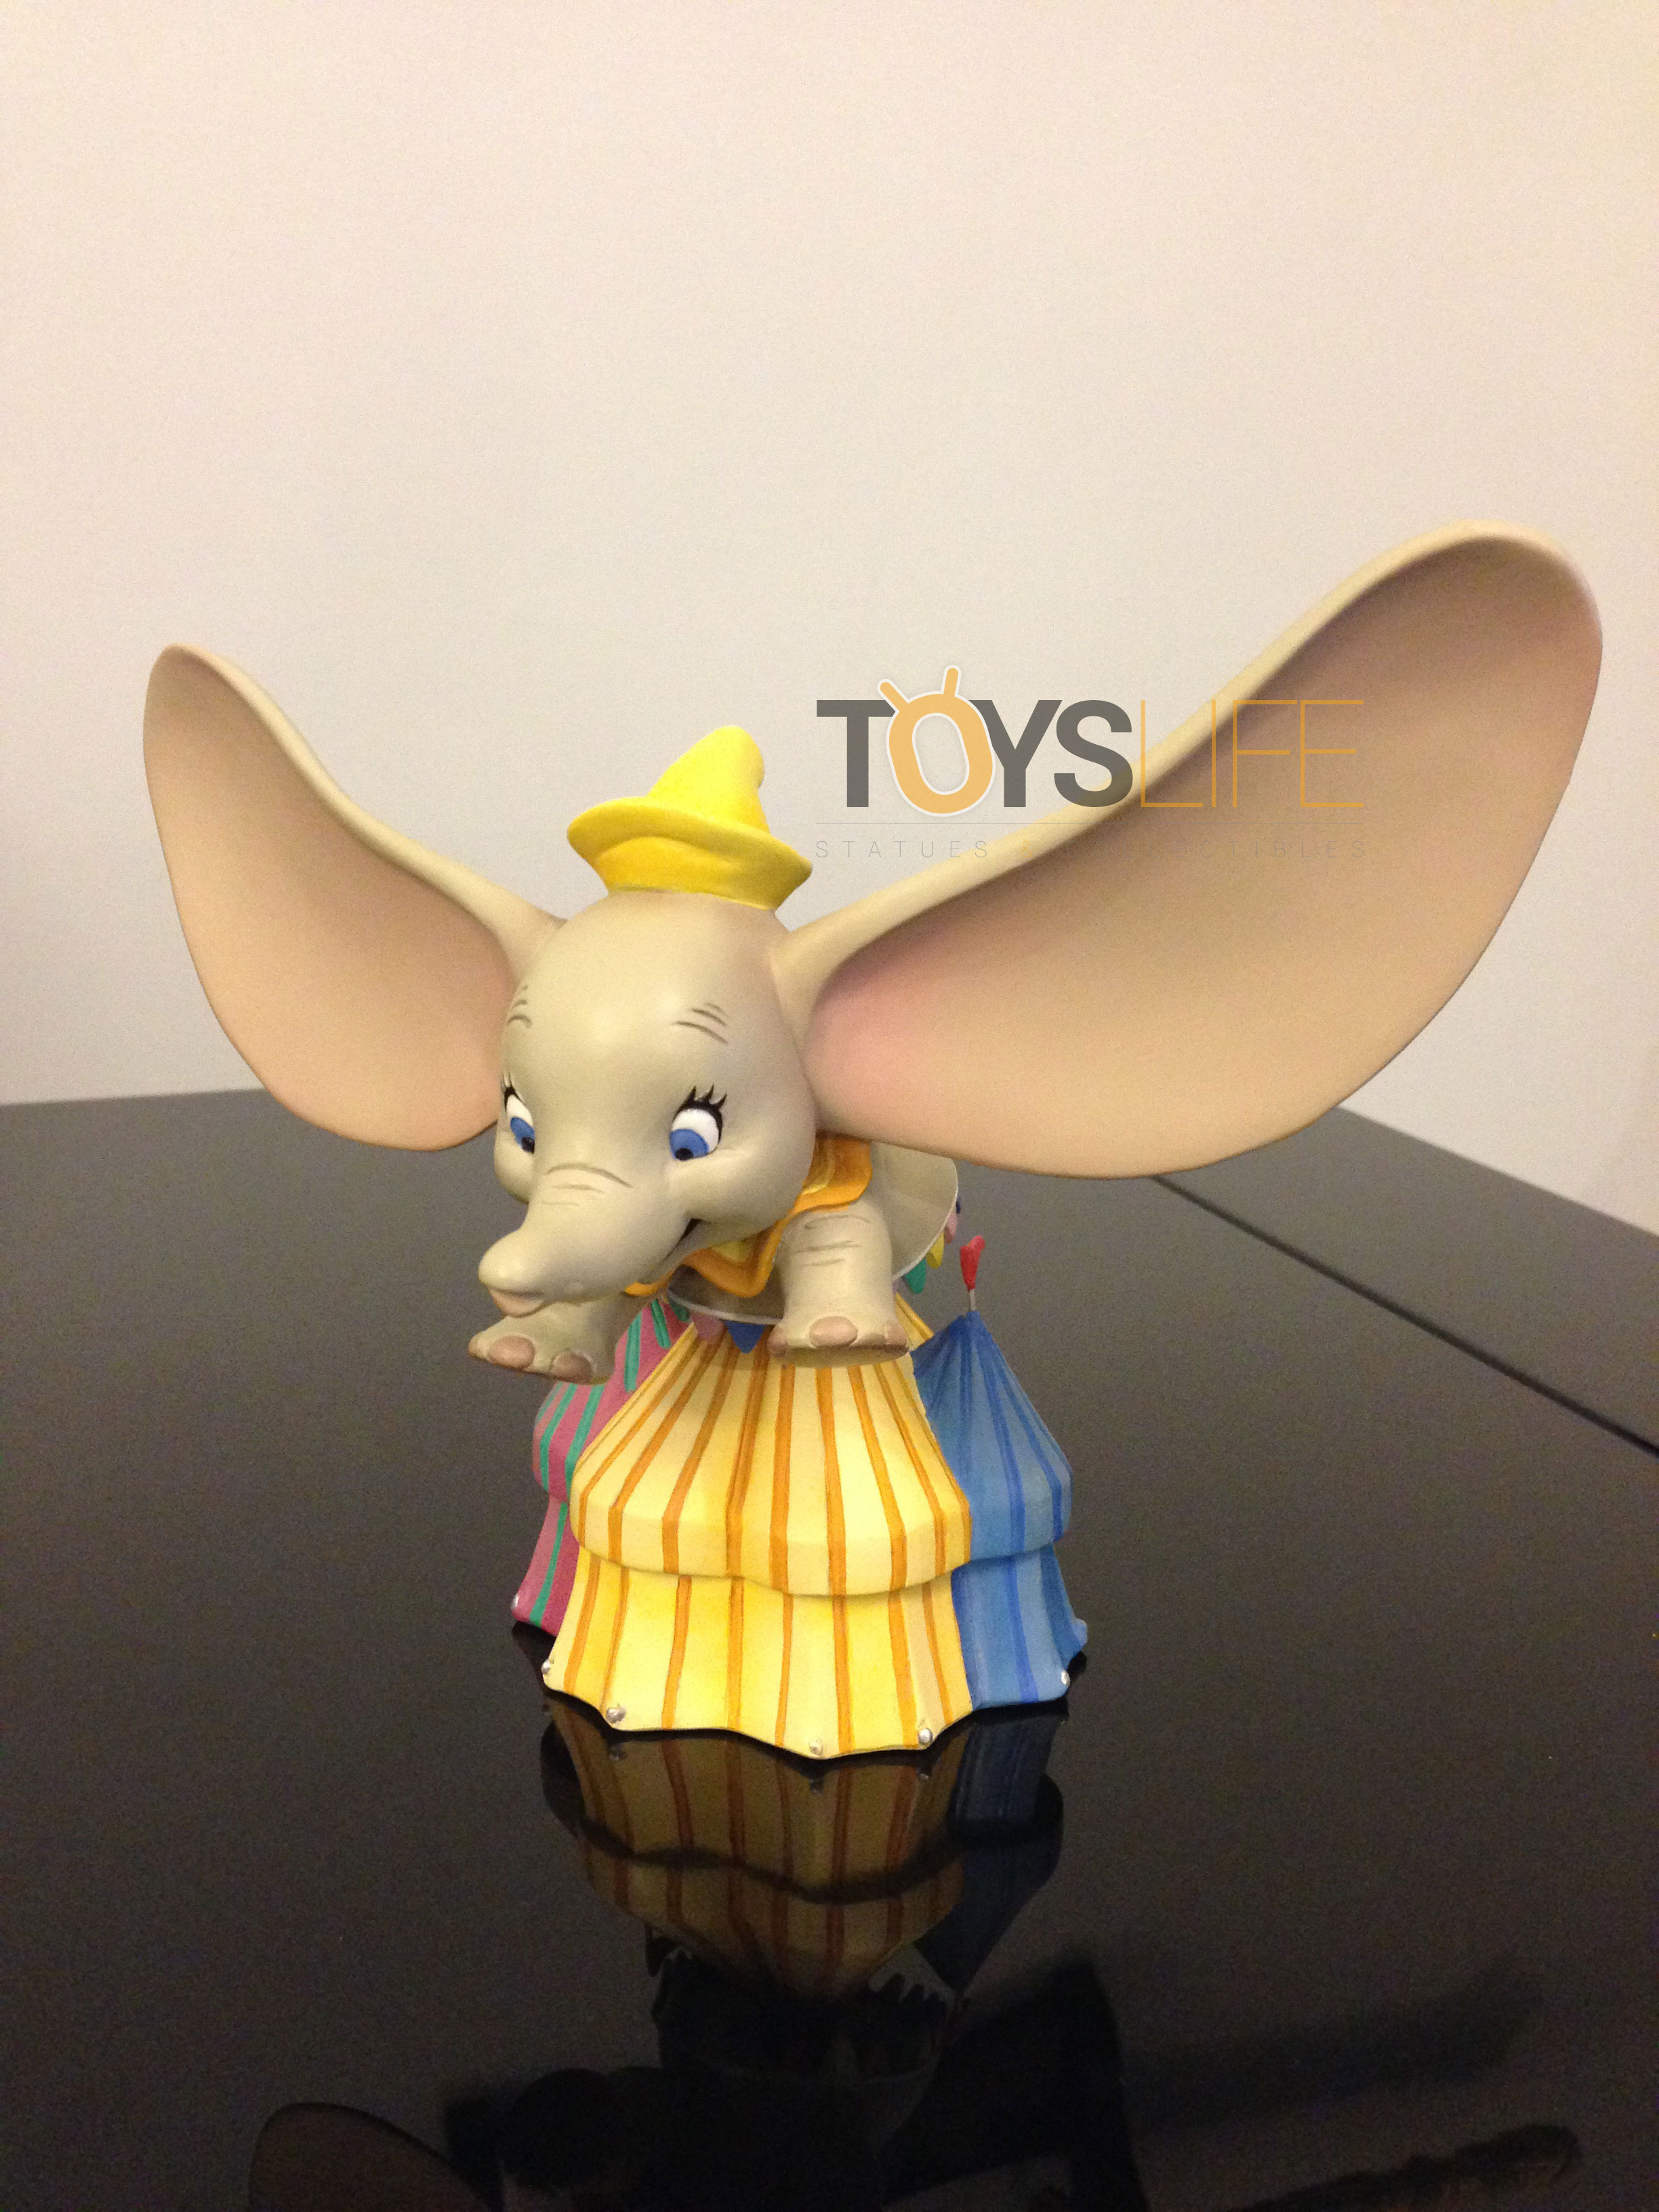 grand-jester-studios-dumbo-bust-toyslife-review-01